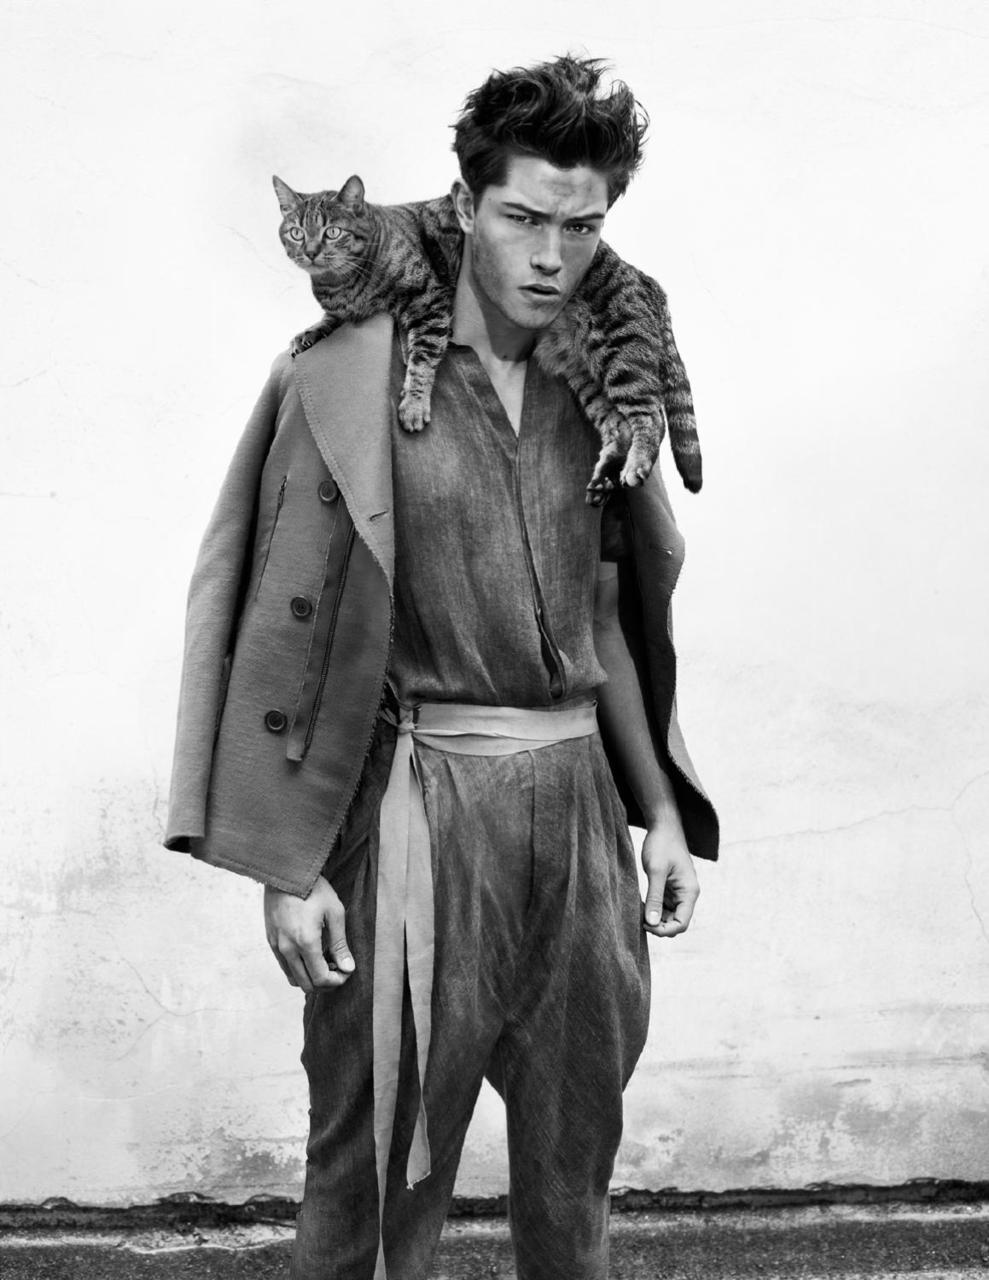 francisco lachowski and one lucky cat -theseagoat